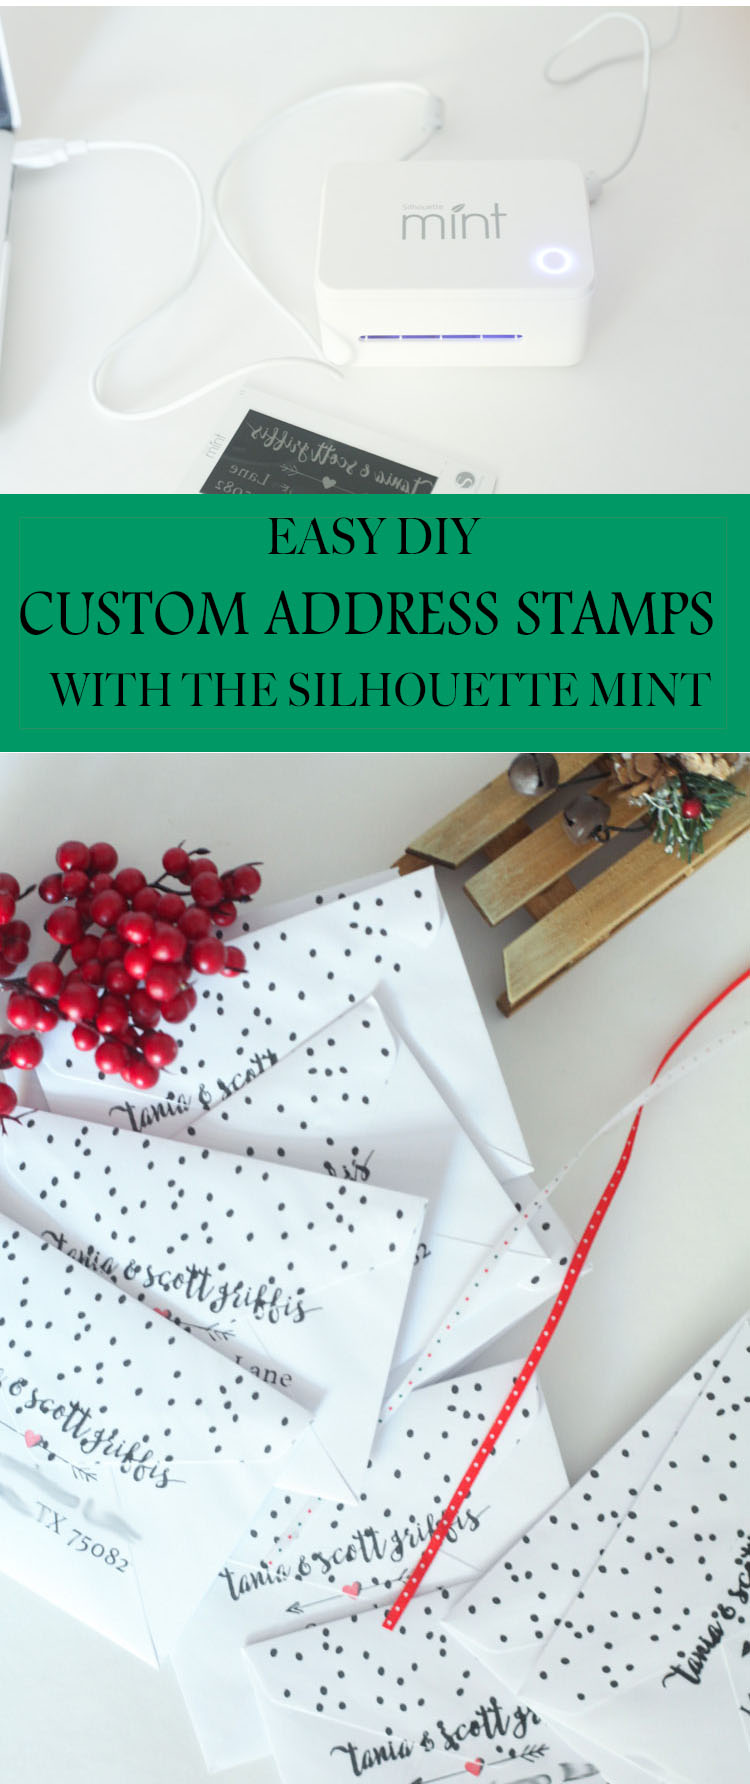 How to make a custom DIY Address stamp! With all the Christmas cards I have to send this year, this would come in handy—looks super easy! Perfect for Christmas card idea! #chirstmasdiy #christmascards